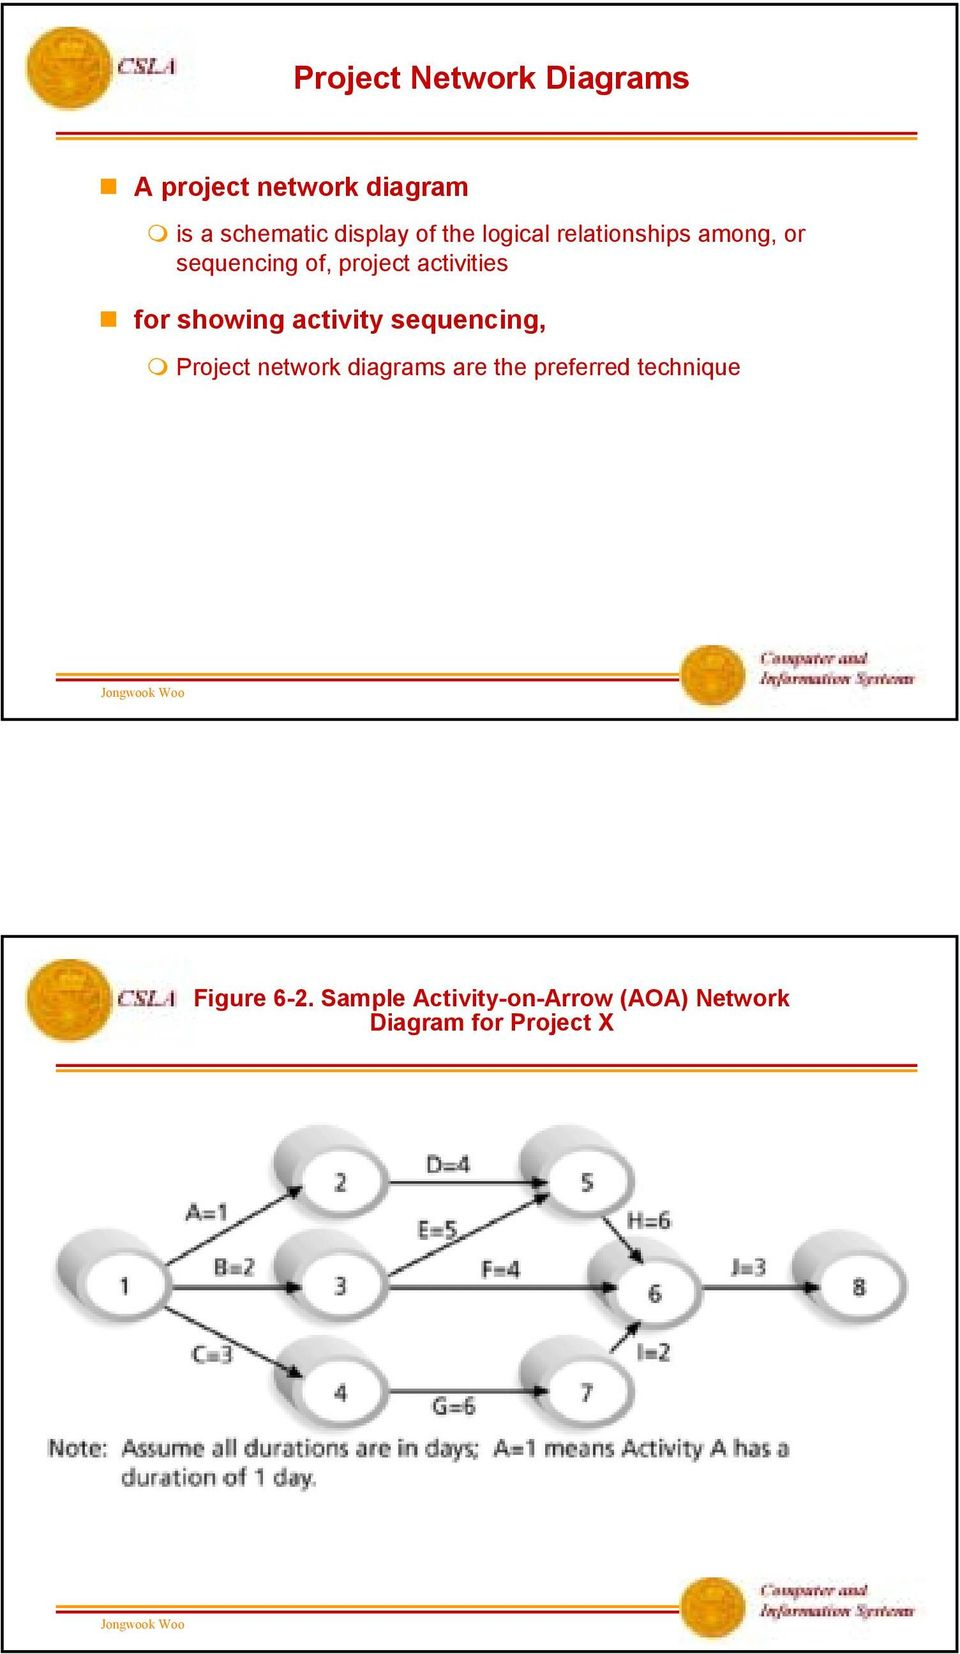 showing activity sequencing, Project network diagrams are the preferred